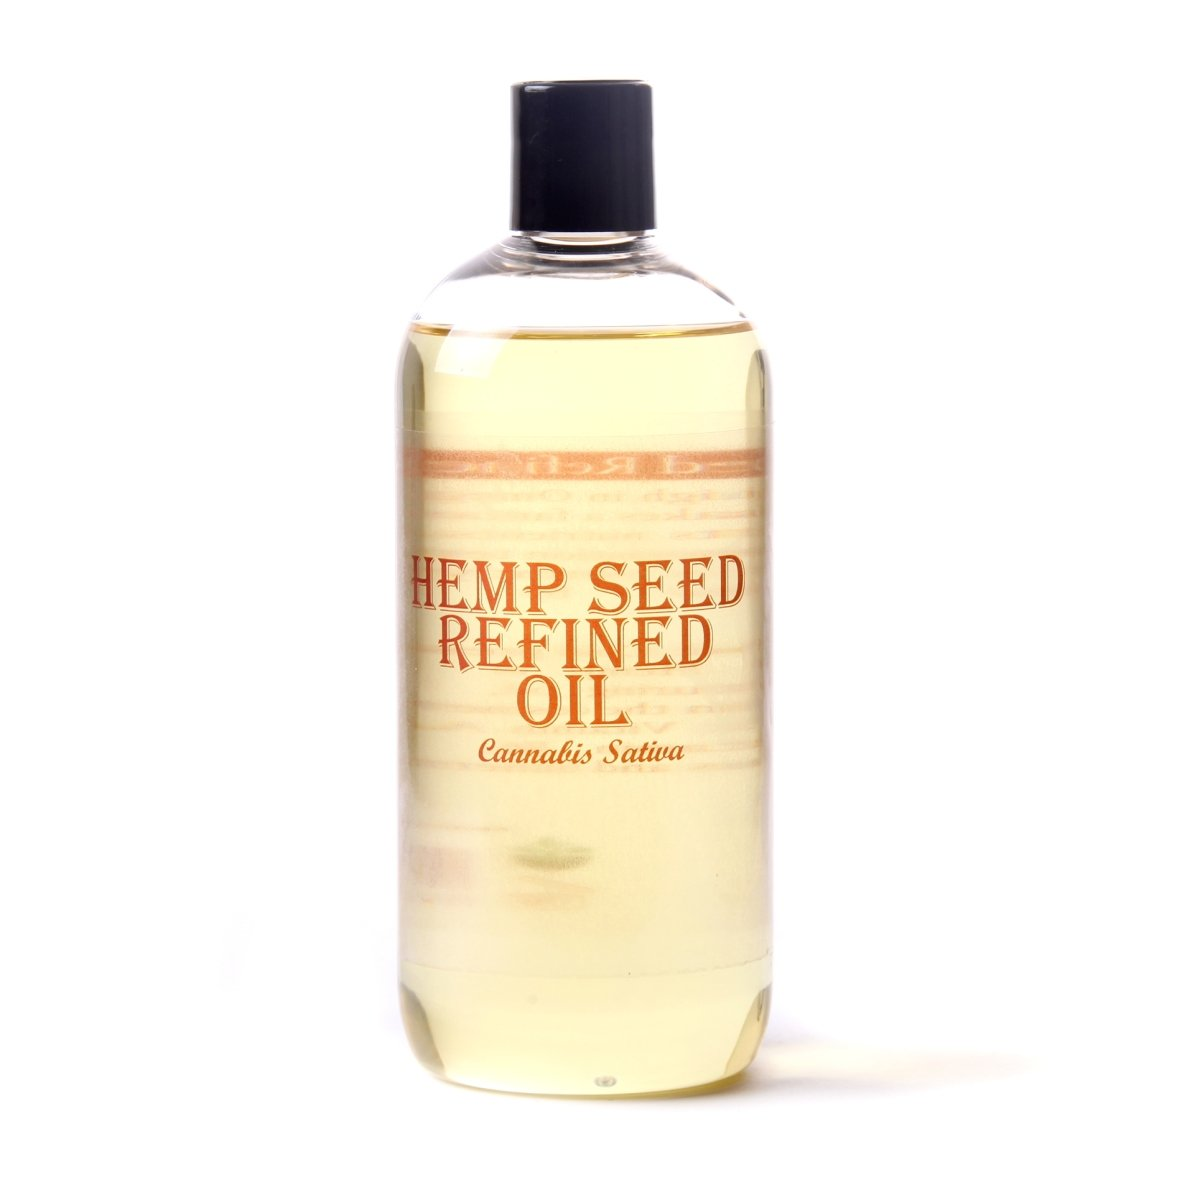 Hemp Seed Refined Carrier Oil Mystic Moments Uk